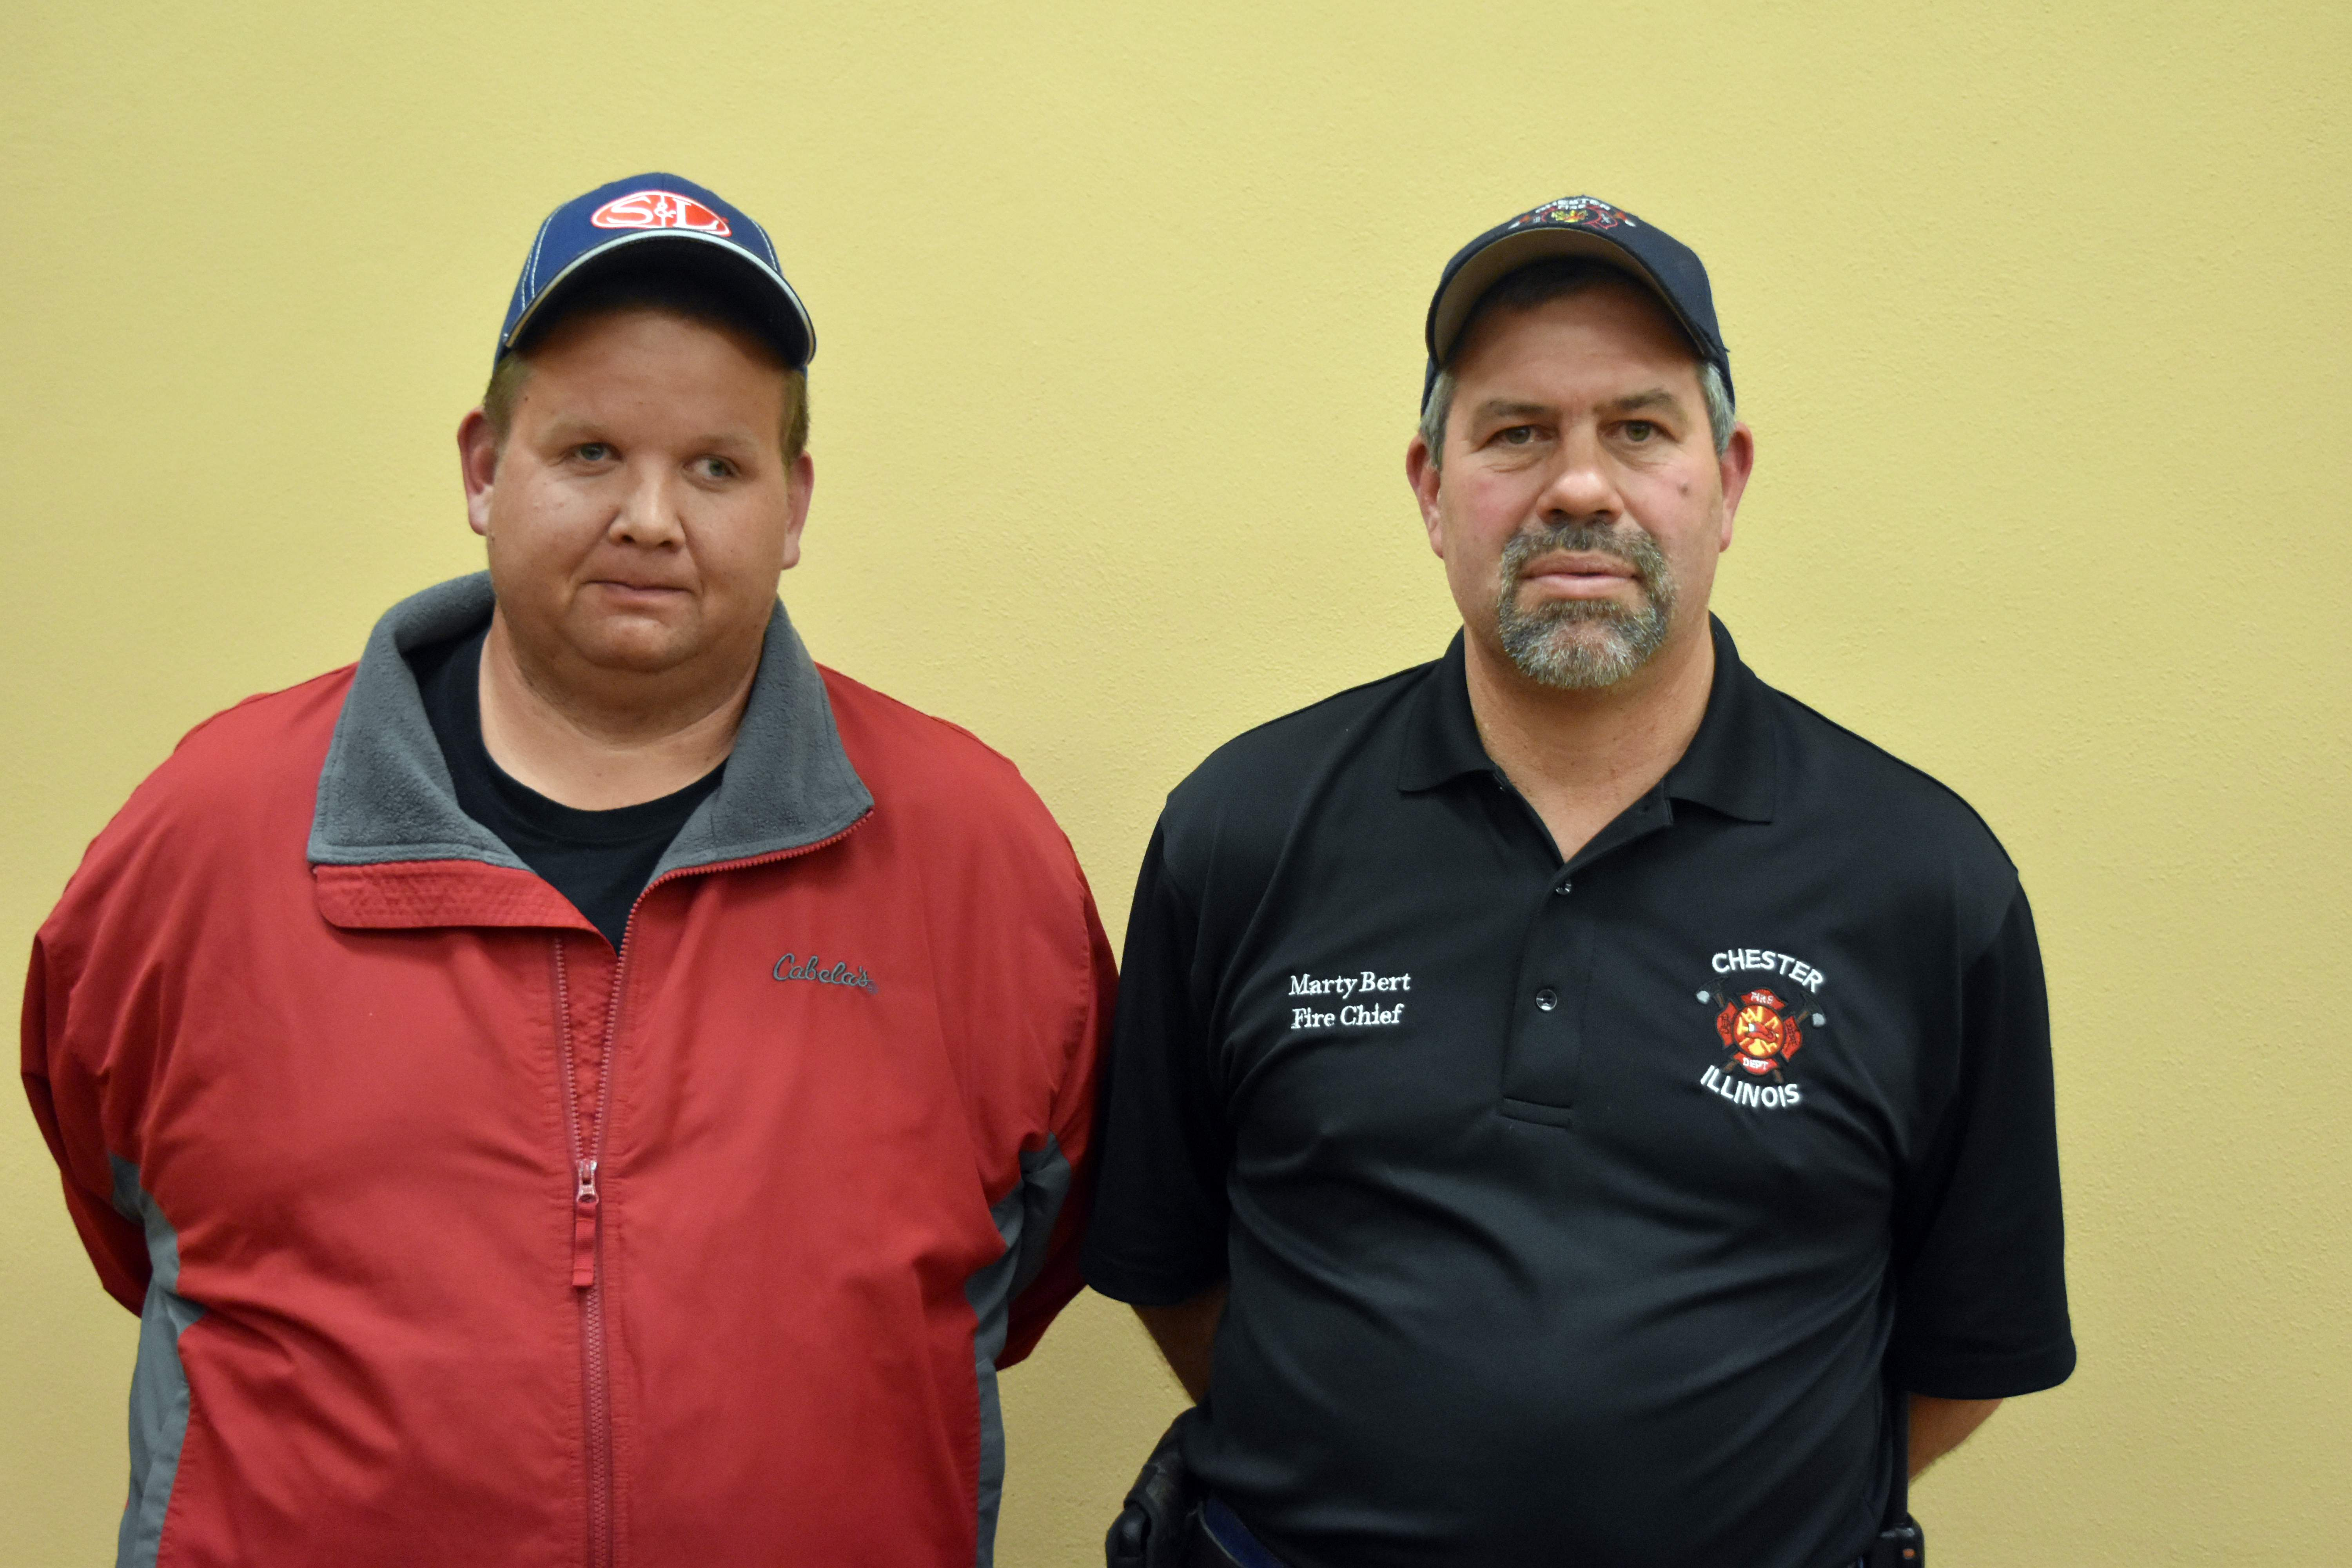 Pictured is new Chester Fire Department auxiliary firefighter Aaron Gibbs (left) with Fire Chief Marty Bert. Gibbs was approved by the Chester City Council during Monday's meeting.